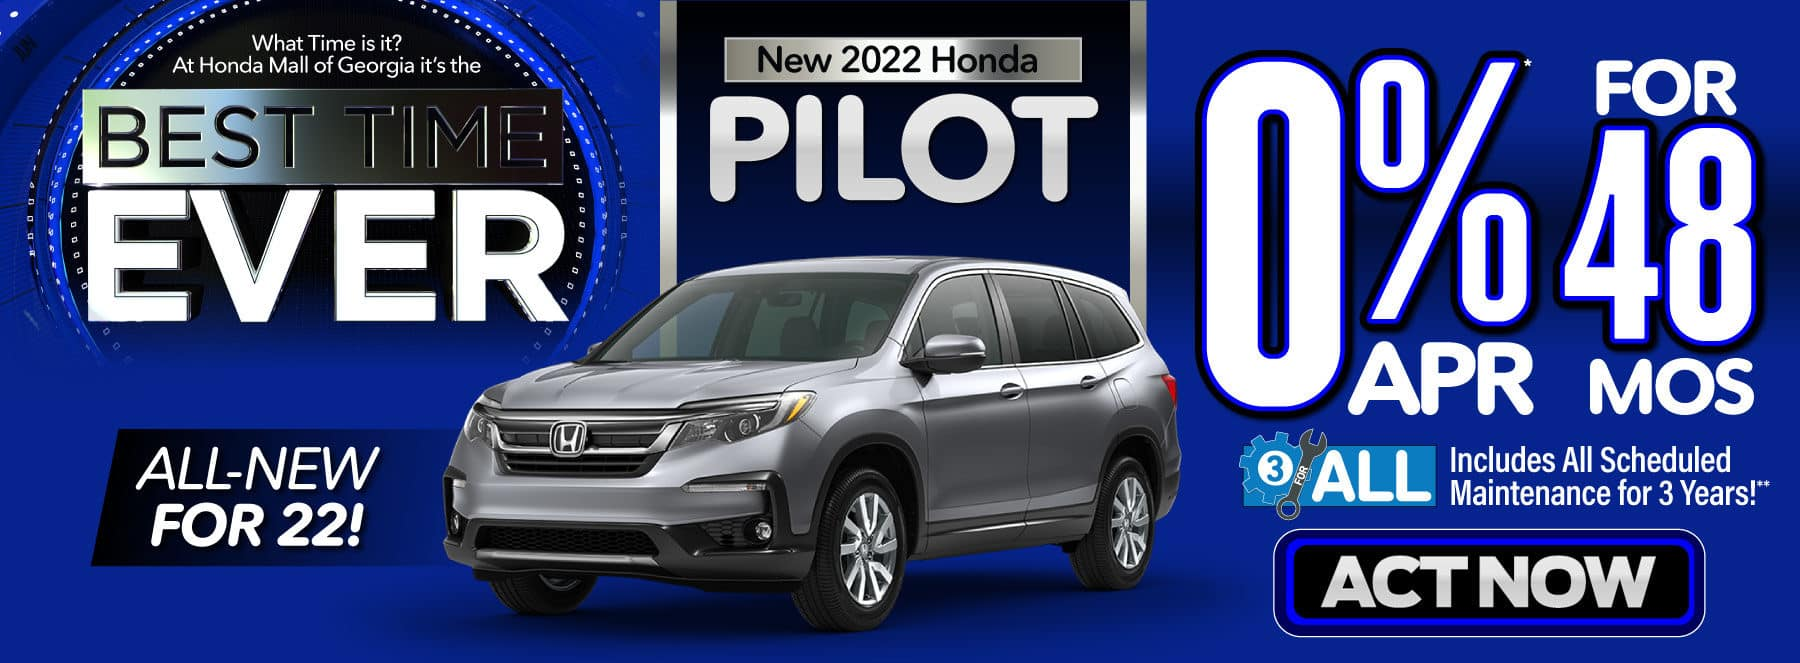 New 2022 Honda Pilot - 0% APR for 48 months - Act Now